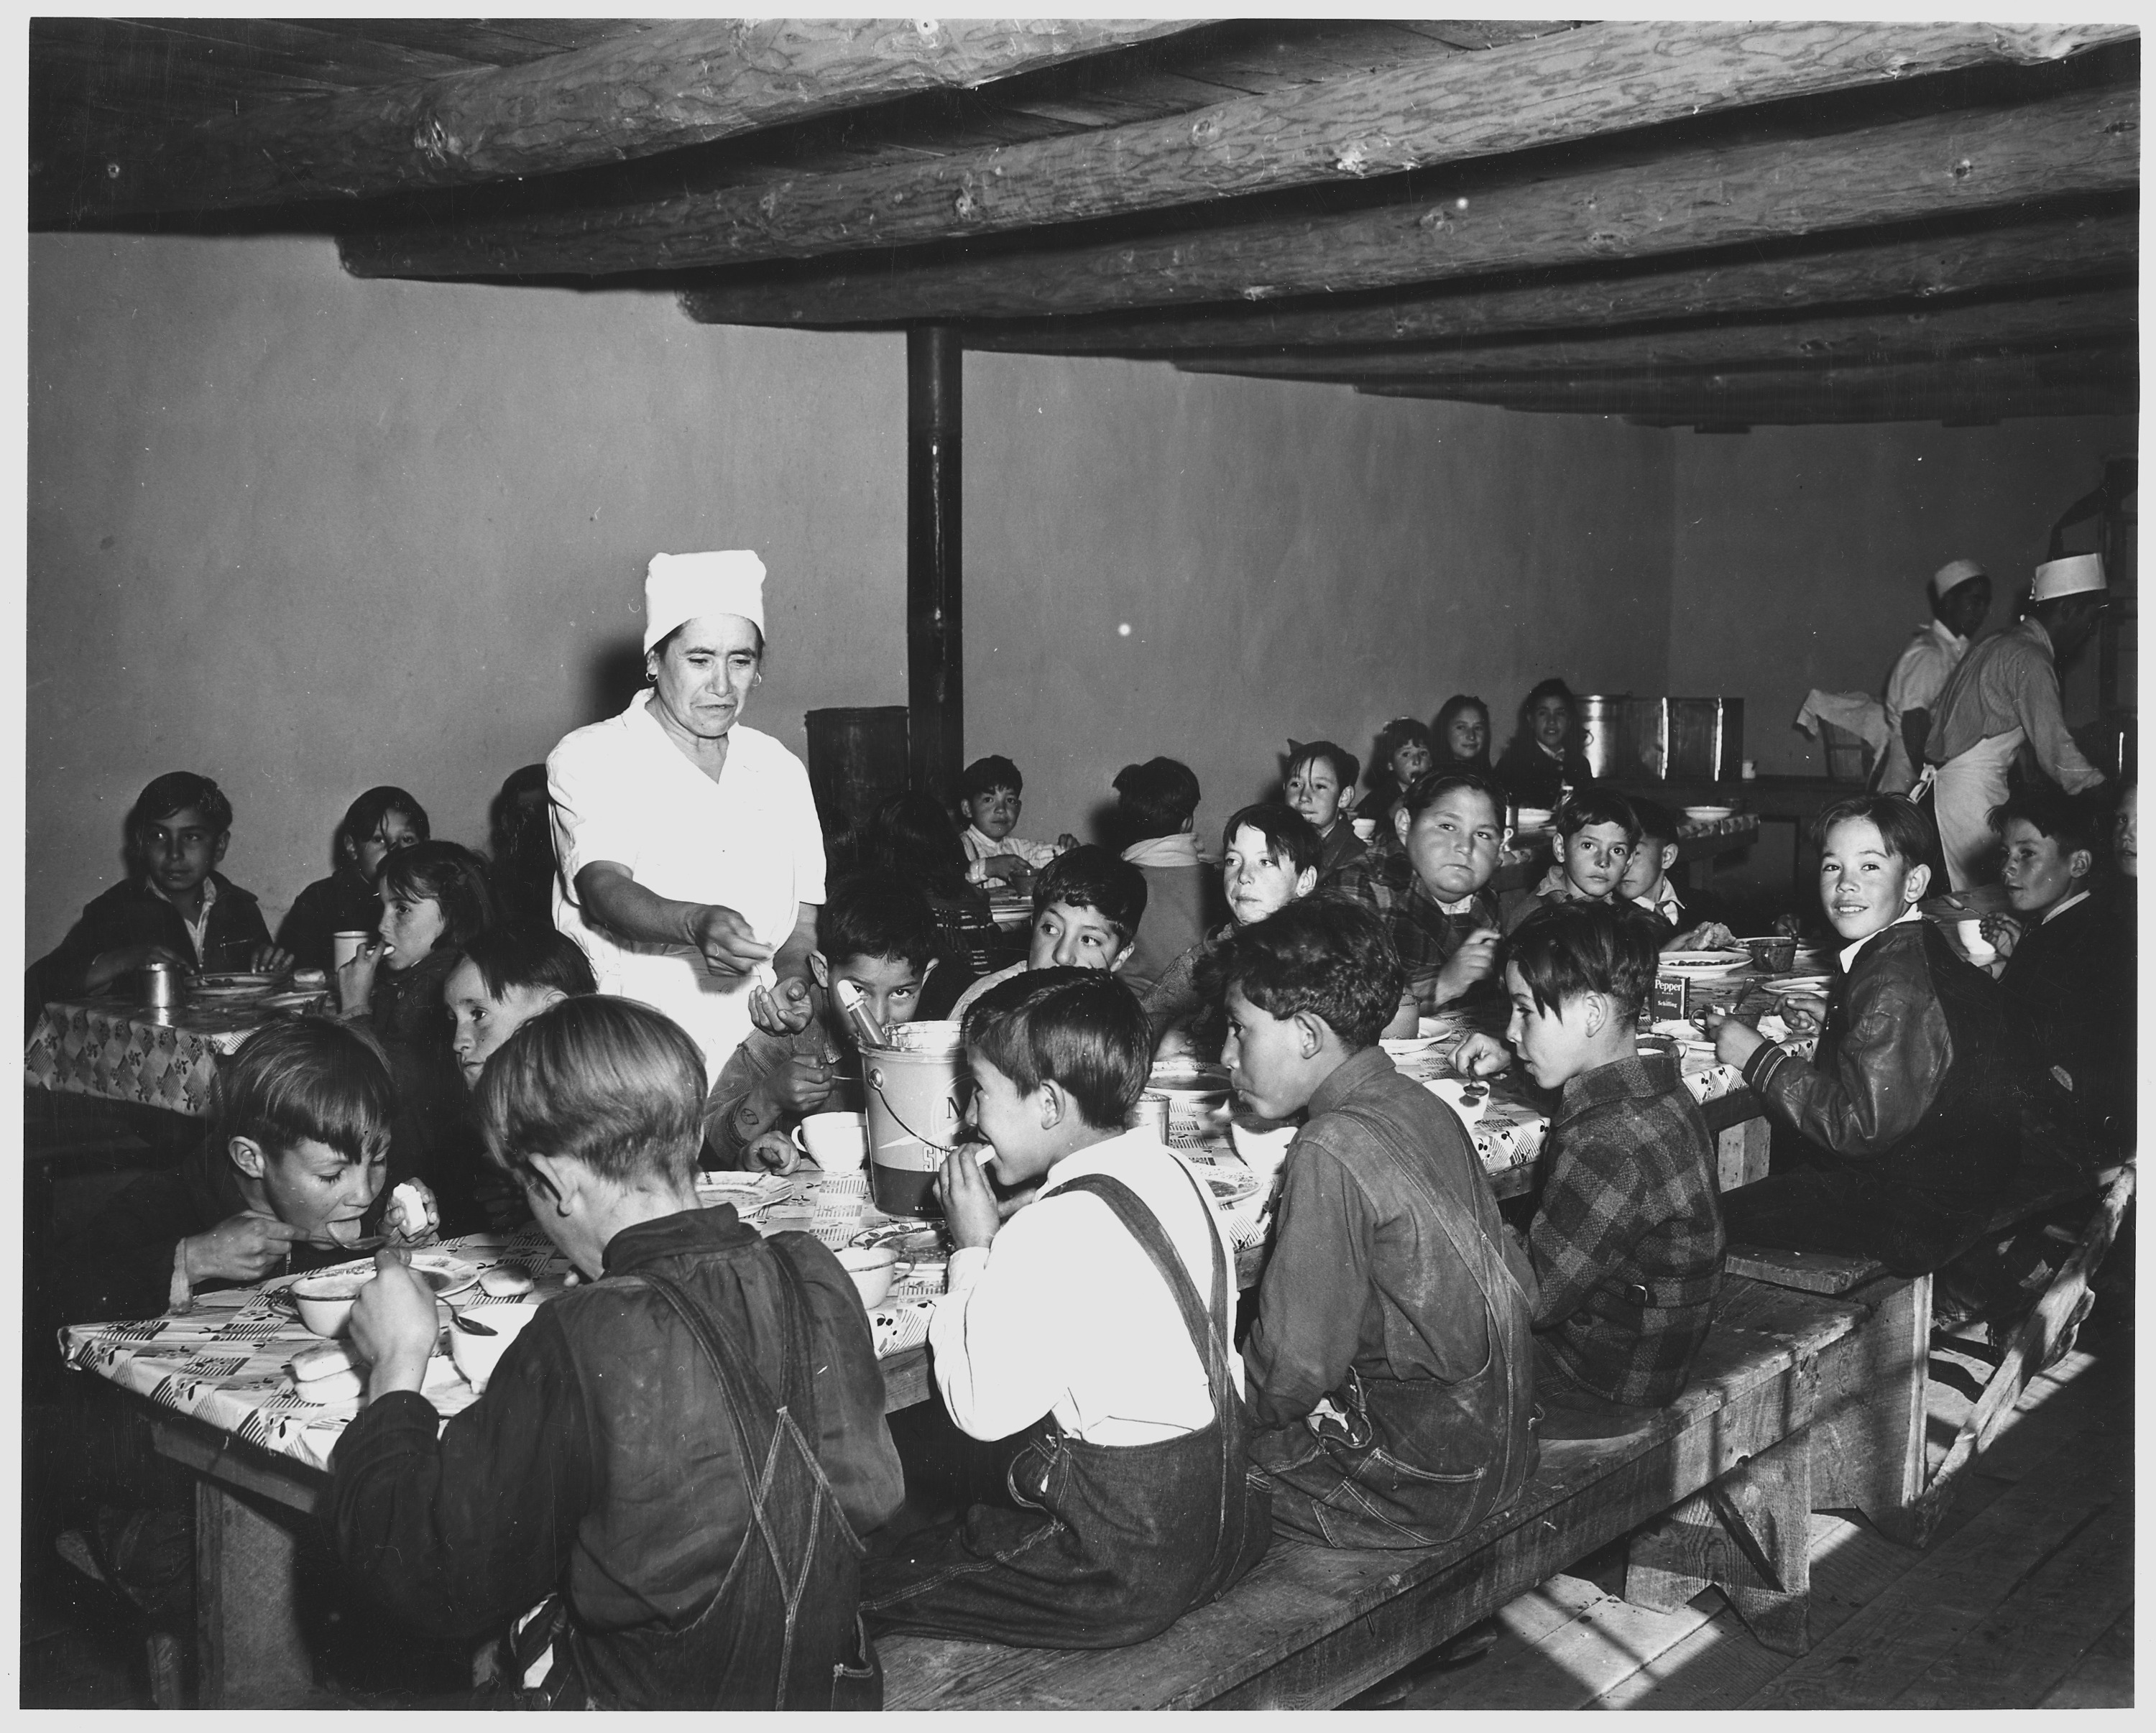 New mexico taos county llano - Taos_county _new_mexico__the_hot_lunch _school_at_penasco__children_pay_about_1_cent_daily_for_thi_______ _nara_ _521840 1941